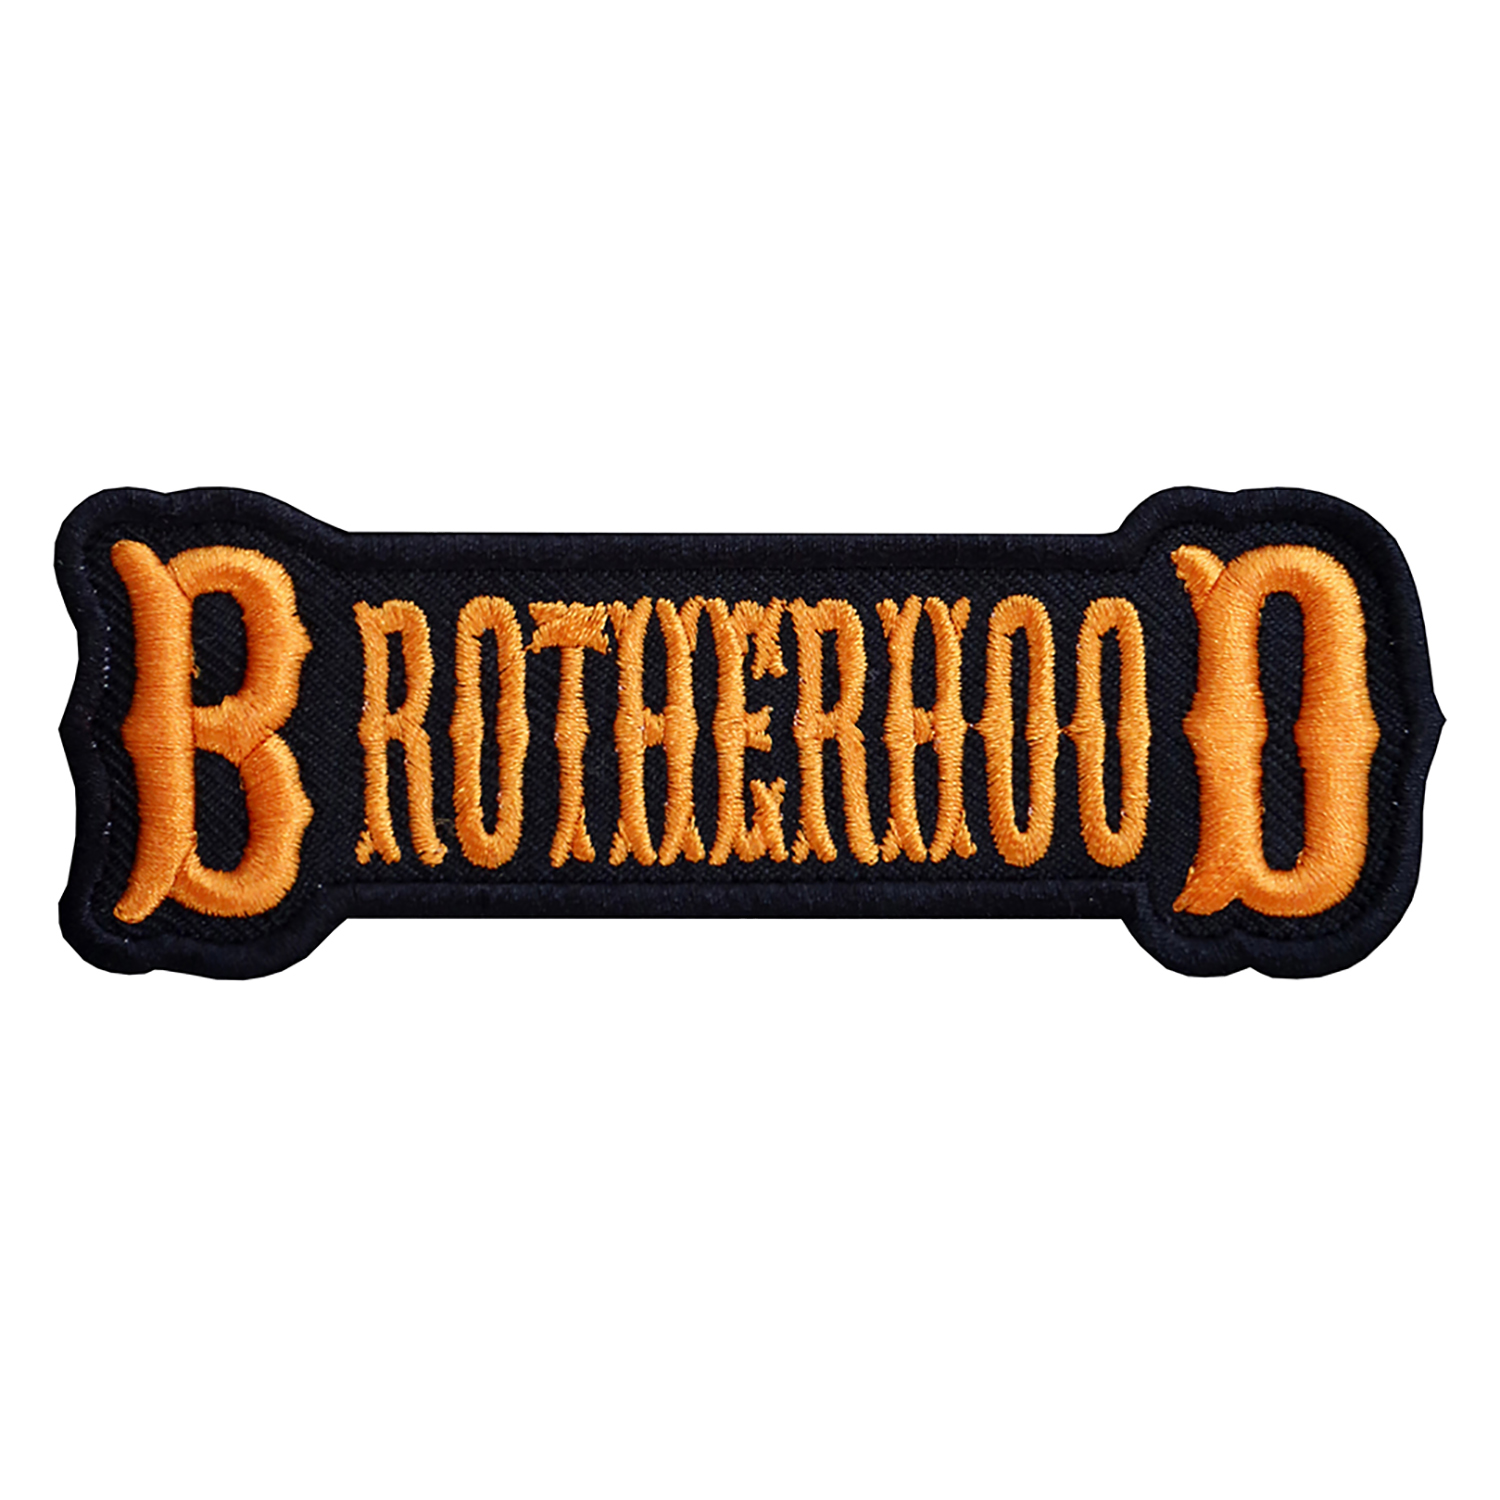 NC PATCHES BROTHERHOOD EMBROIDERED BIKER PATCH